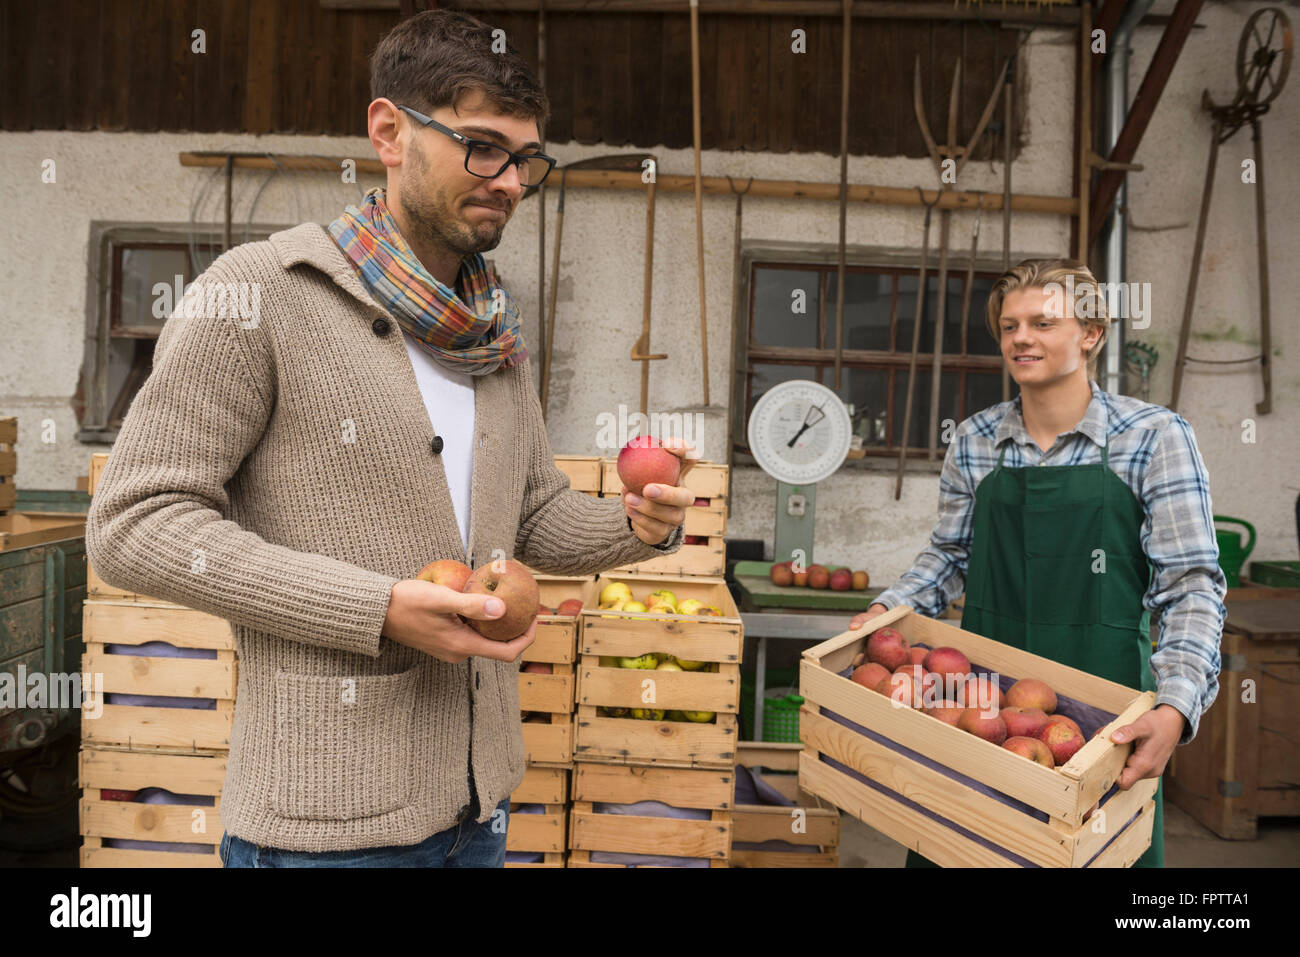 Critical wholesale purchaser buying apples in organic farm, Bavaria, Germany - Stock Image